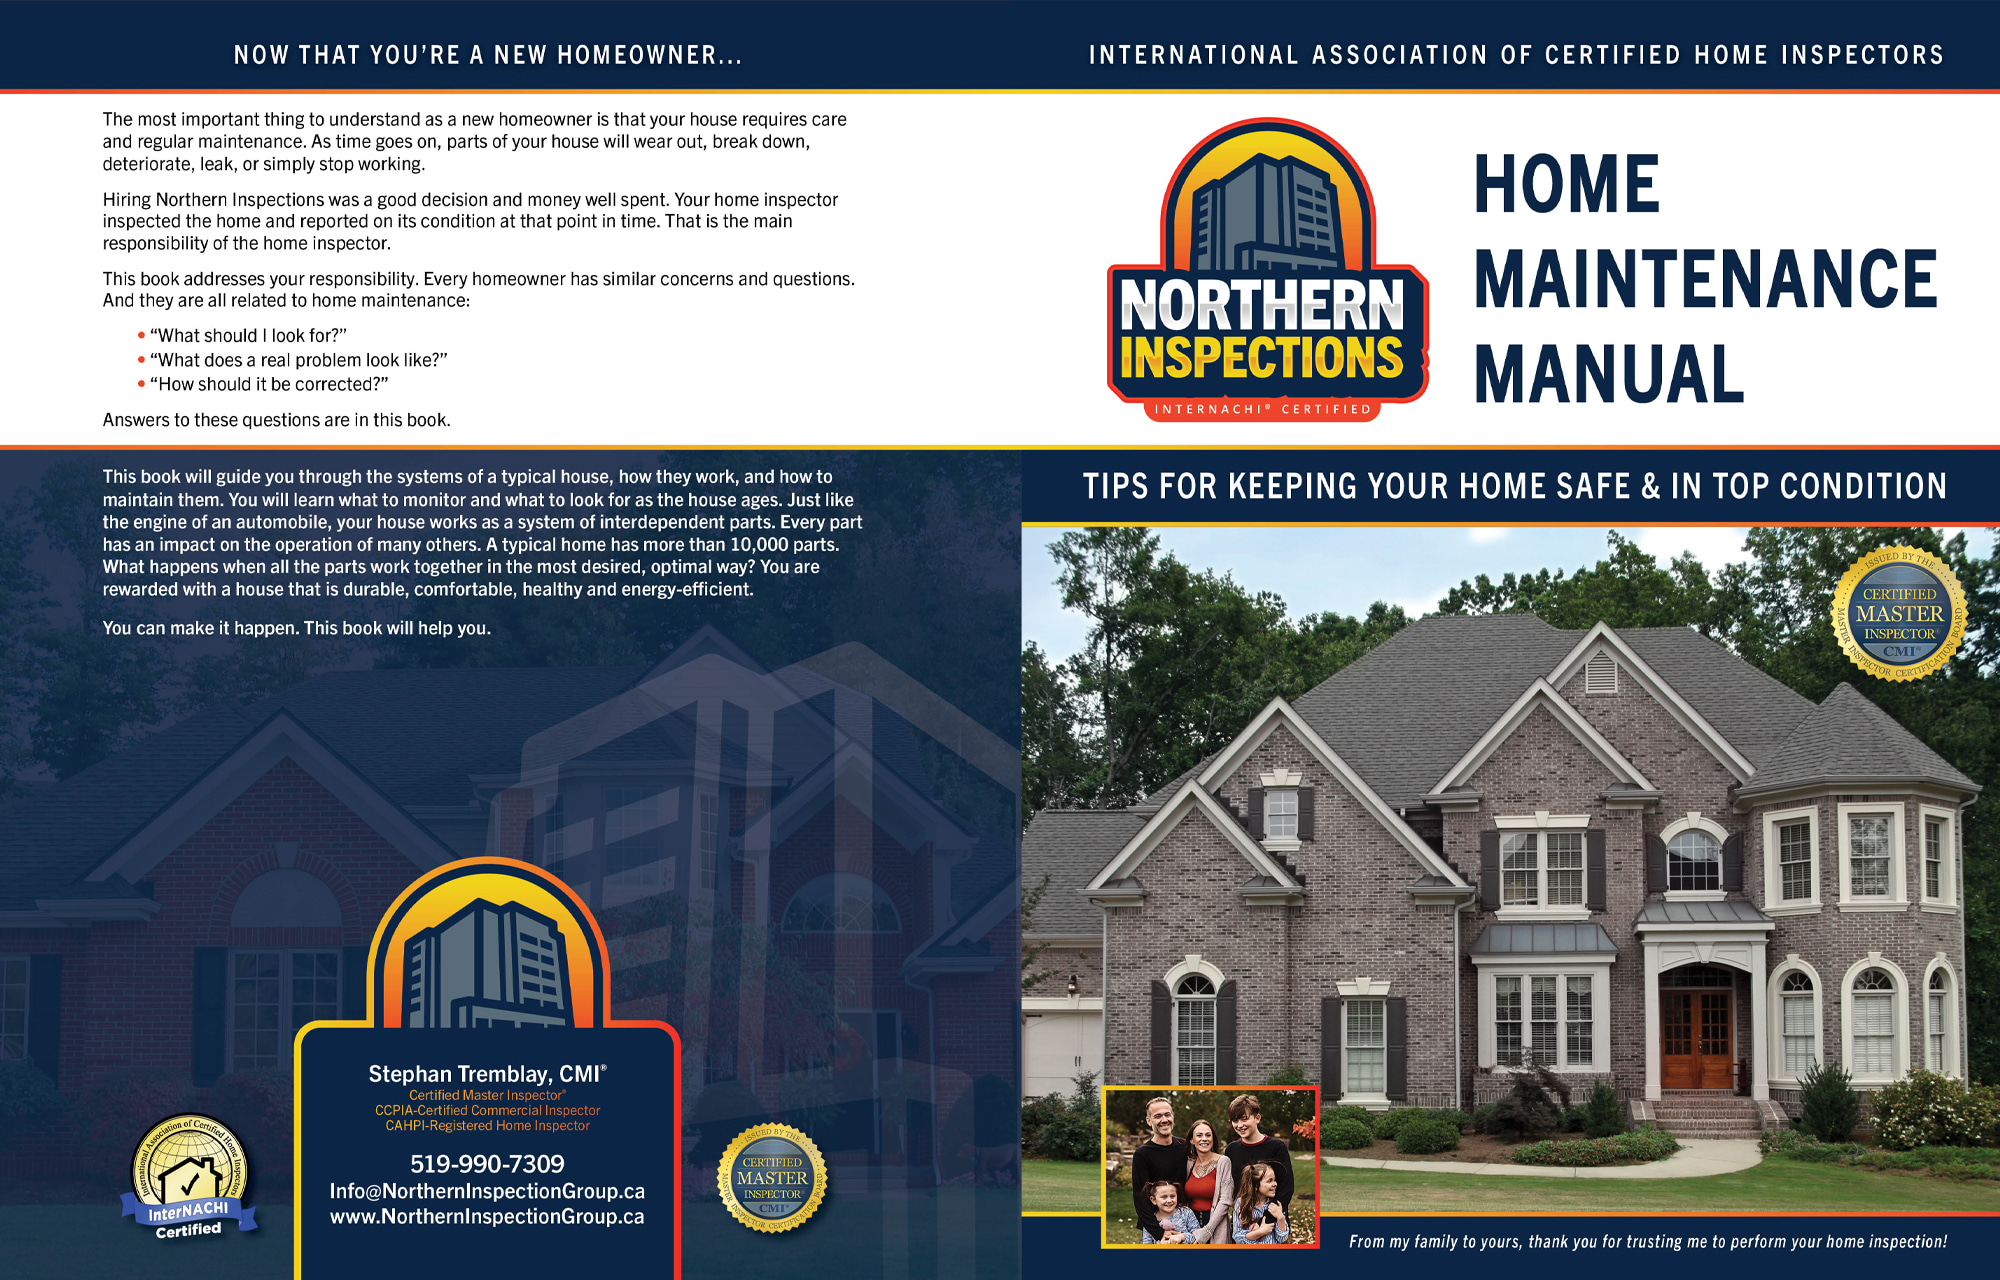 Custom Home Maintenance Book for Northern Inspections